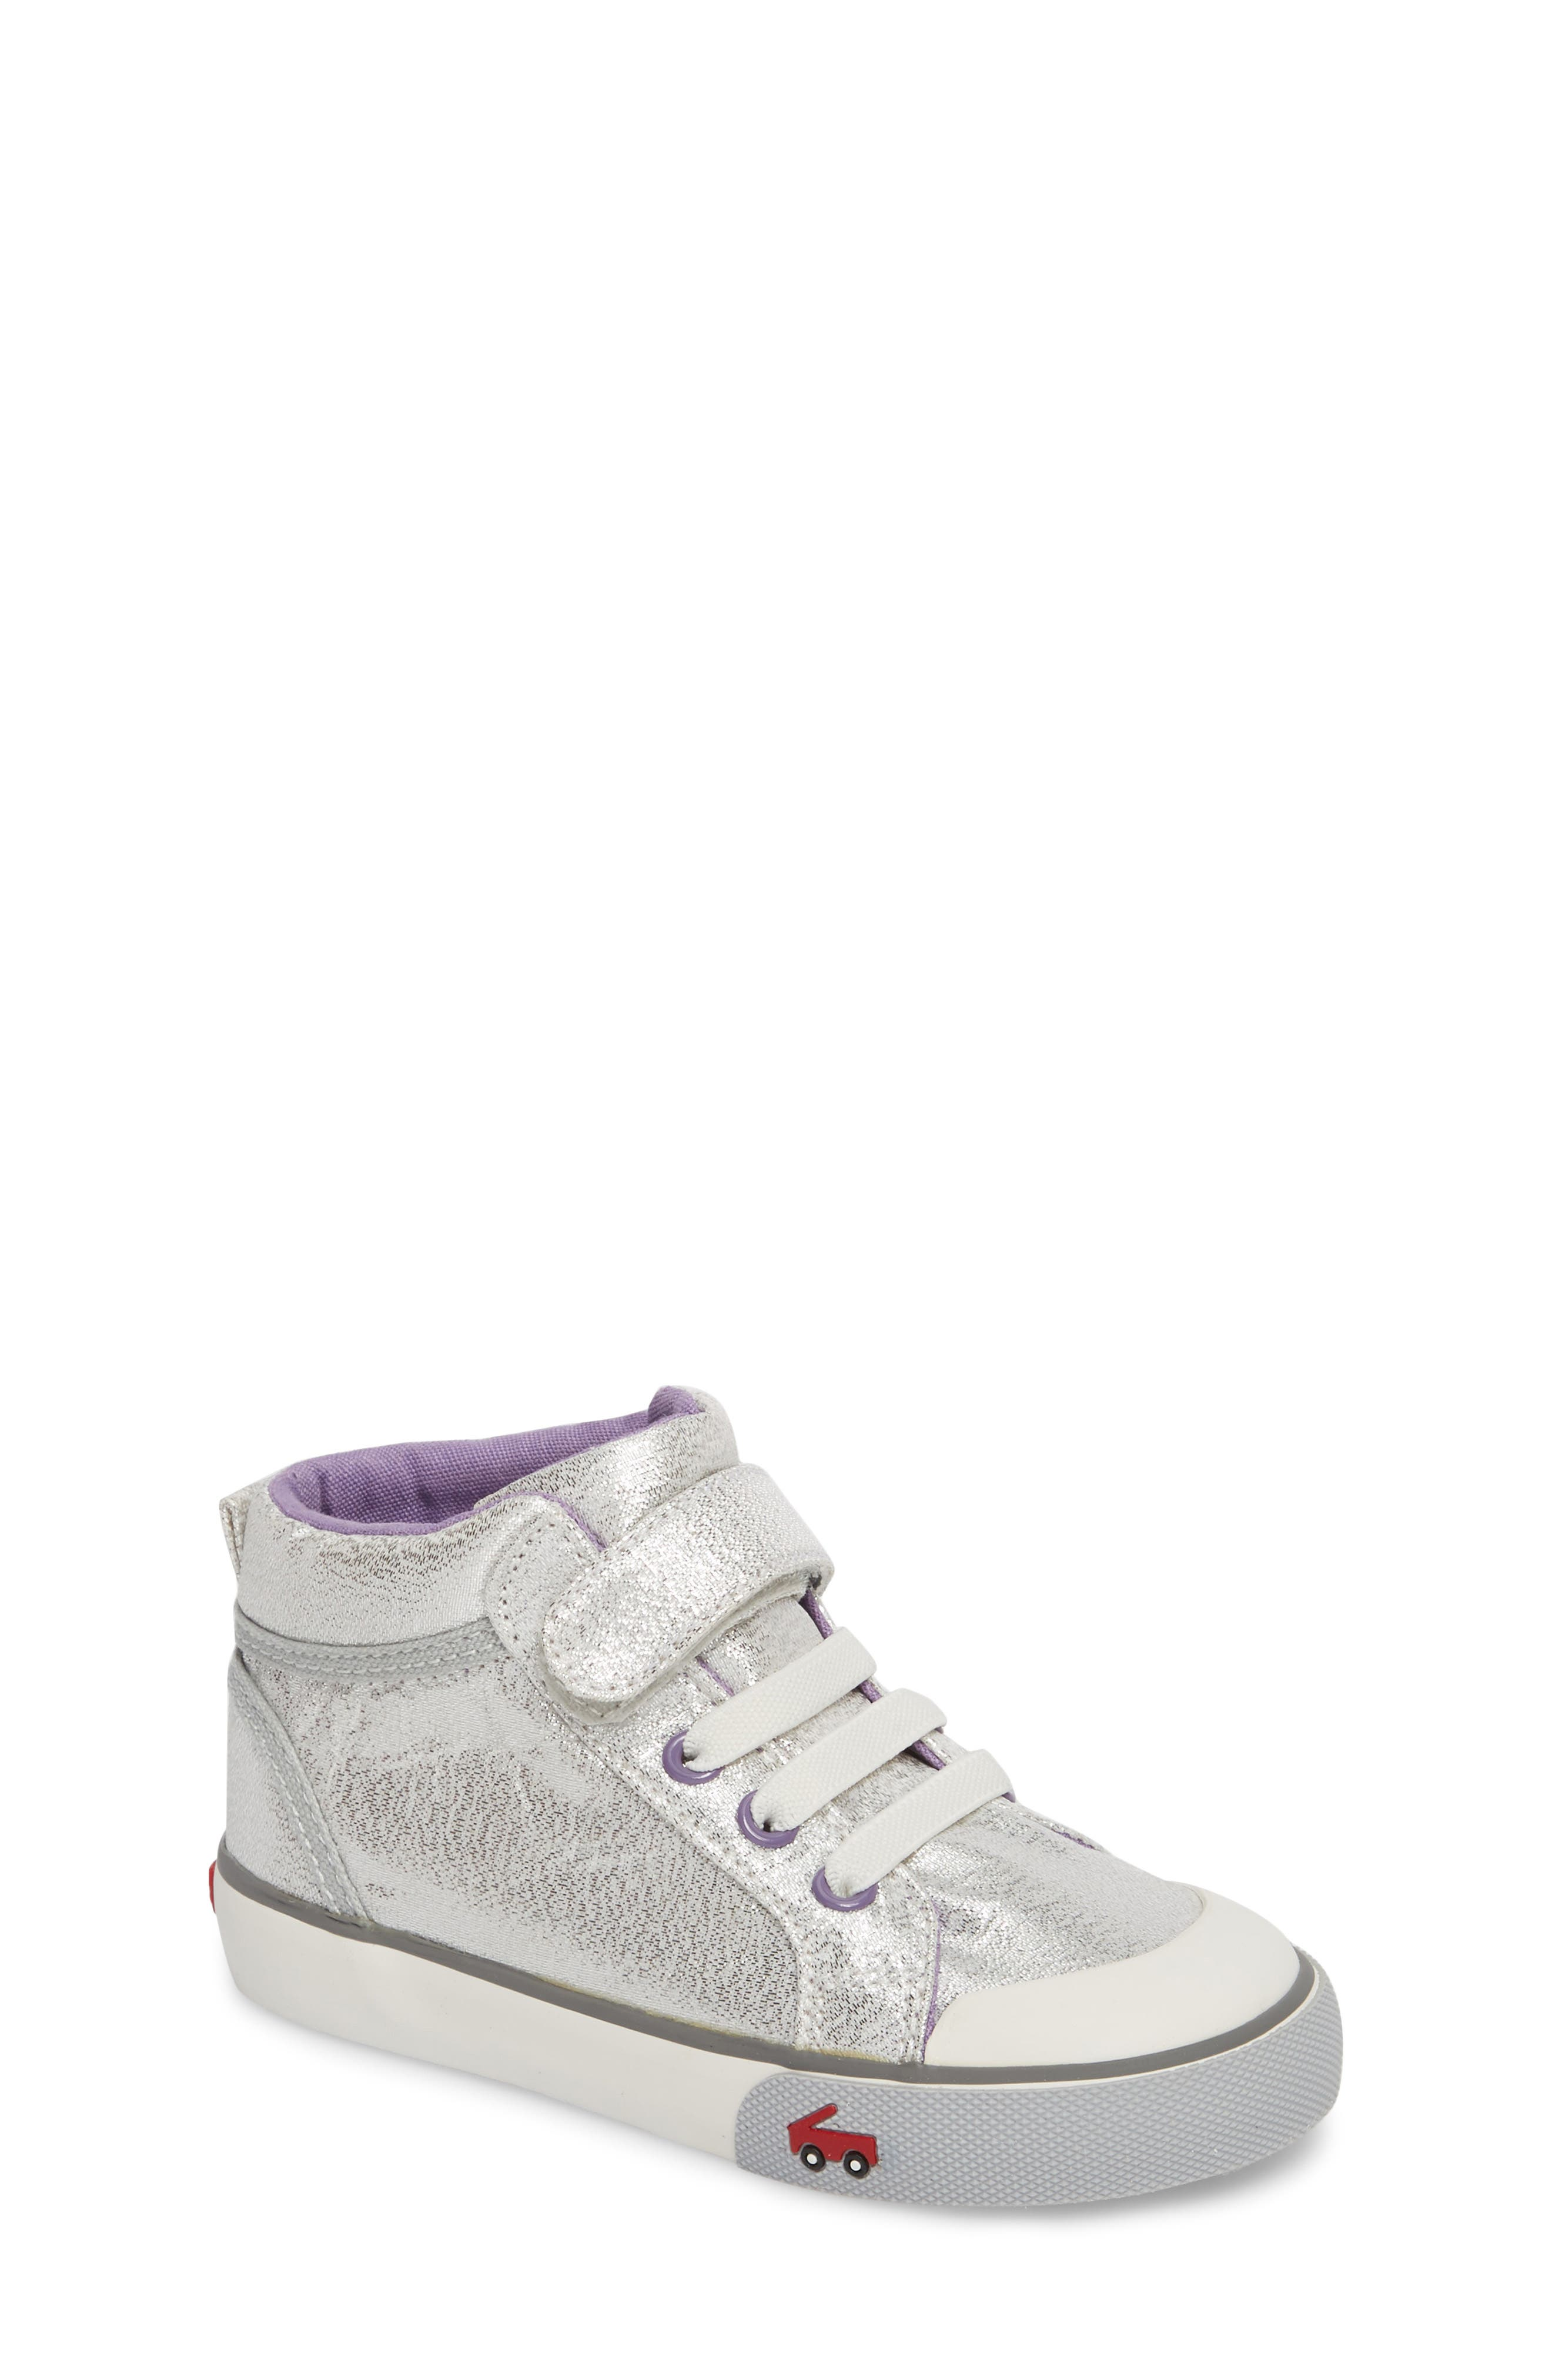 Alternate Image 1 Selected - See Kai Run Peyton Metallic Mid Top Sneaker (Baby, Walker, Toddler & Little Kid)